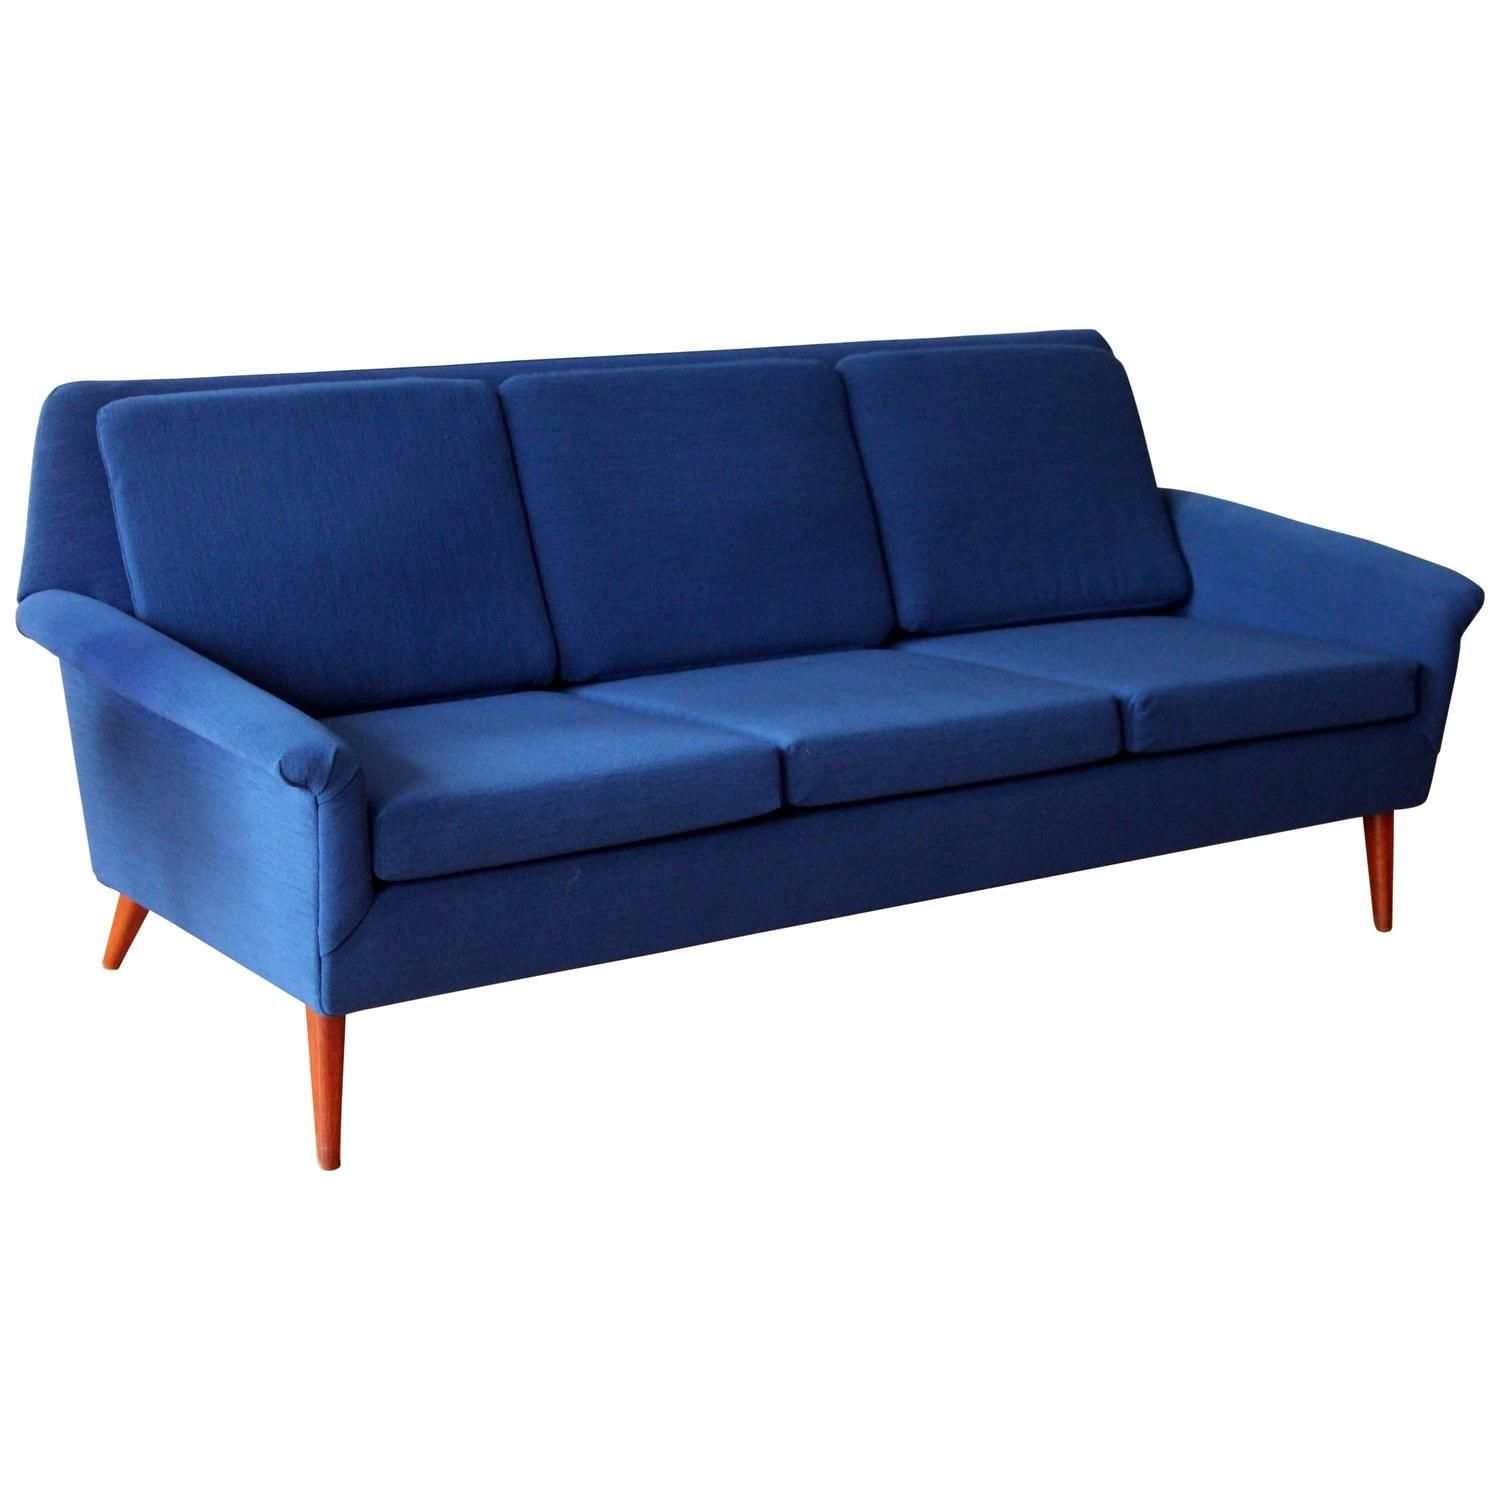 contemporary sofa king snl model-Fascinating sofa King Snl Decoration